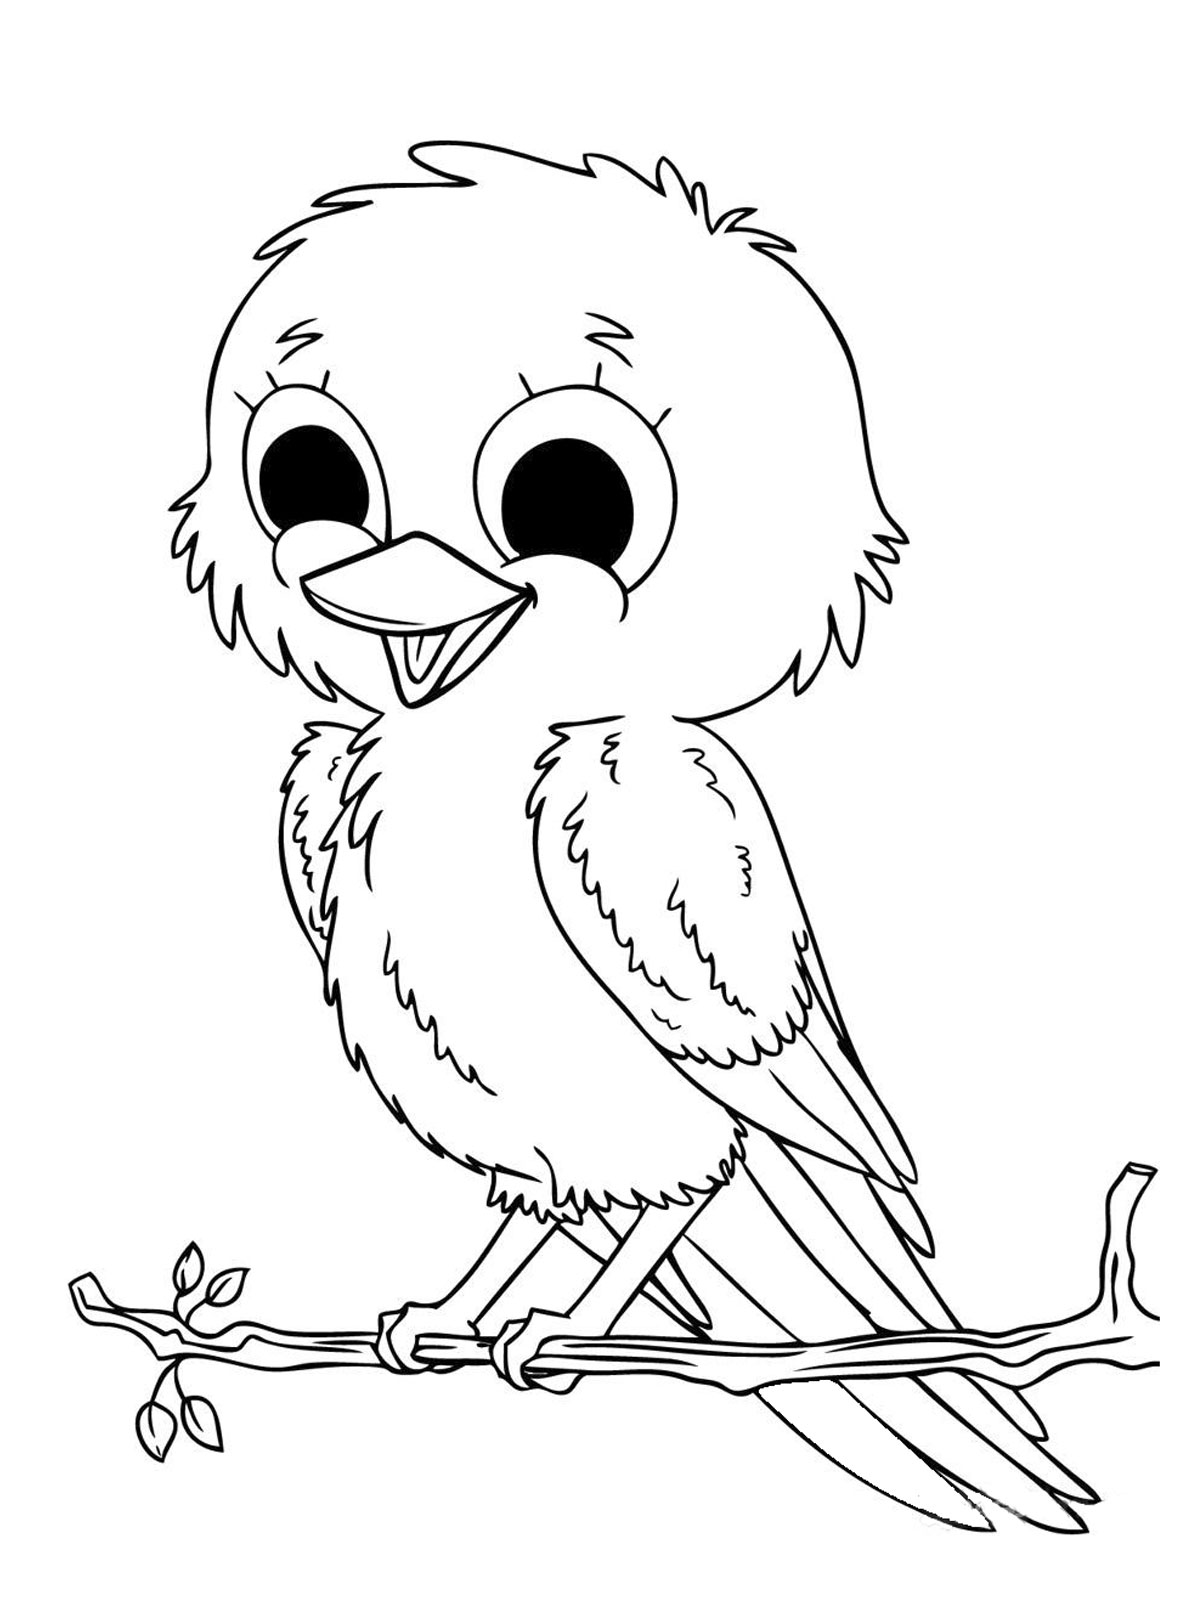 coloring animal pages - photo#17